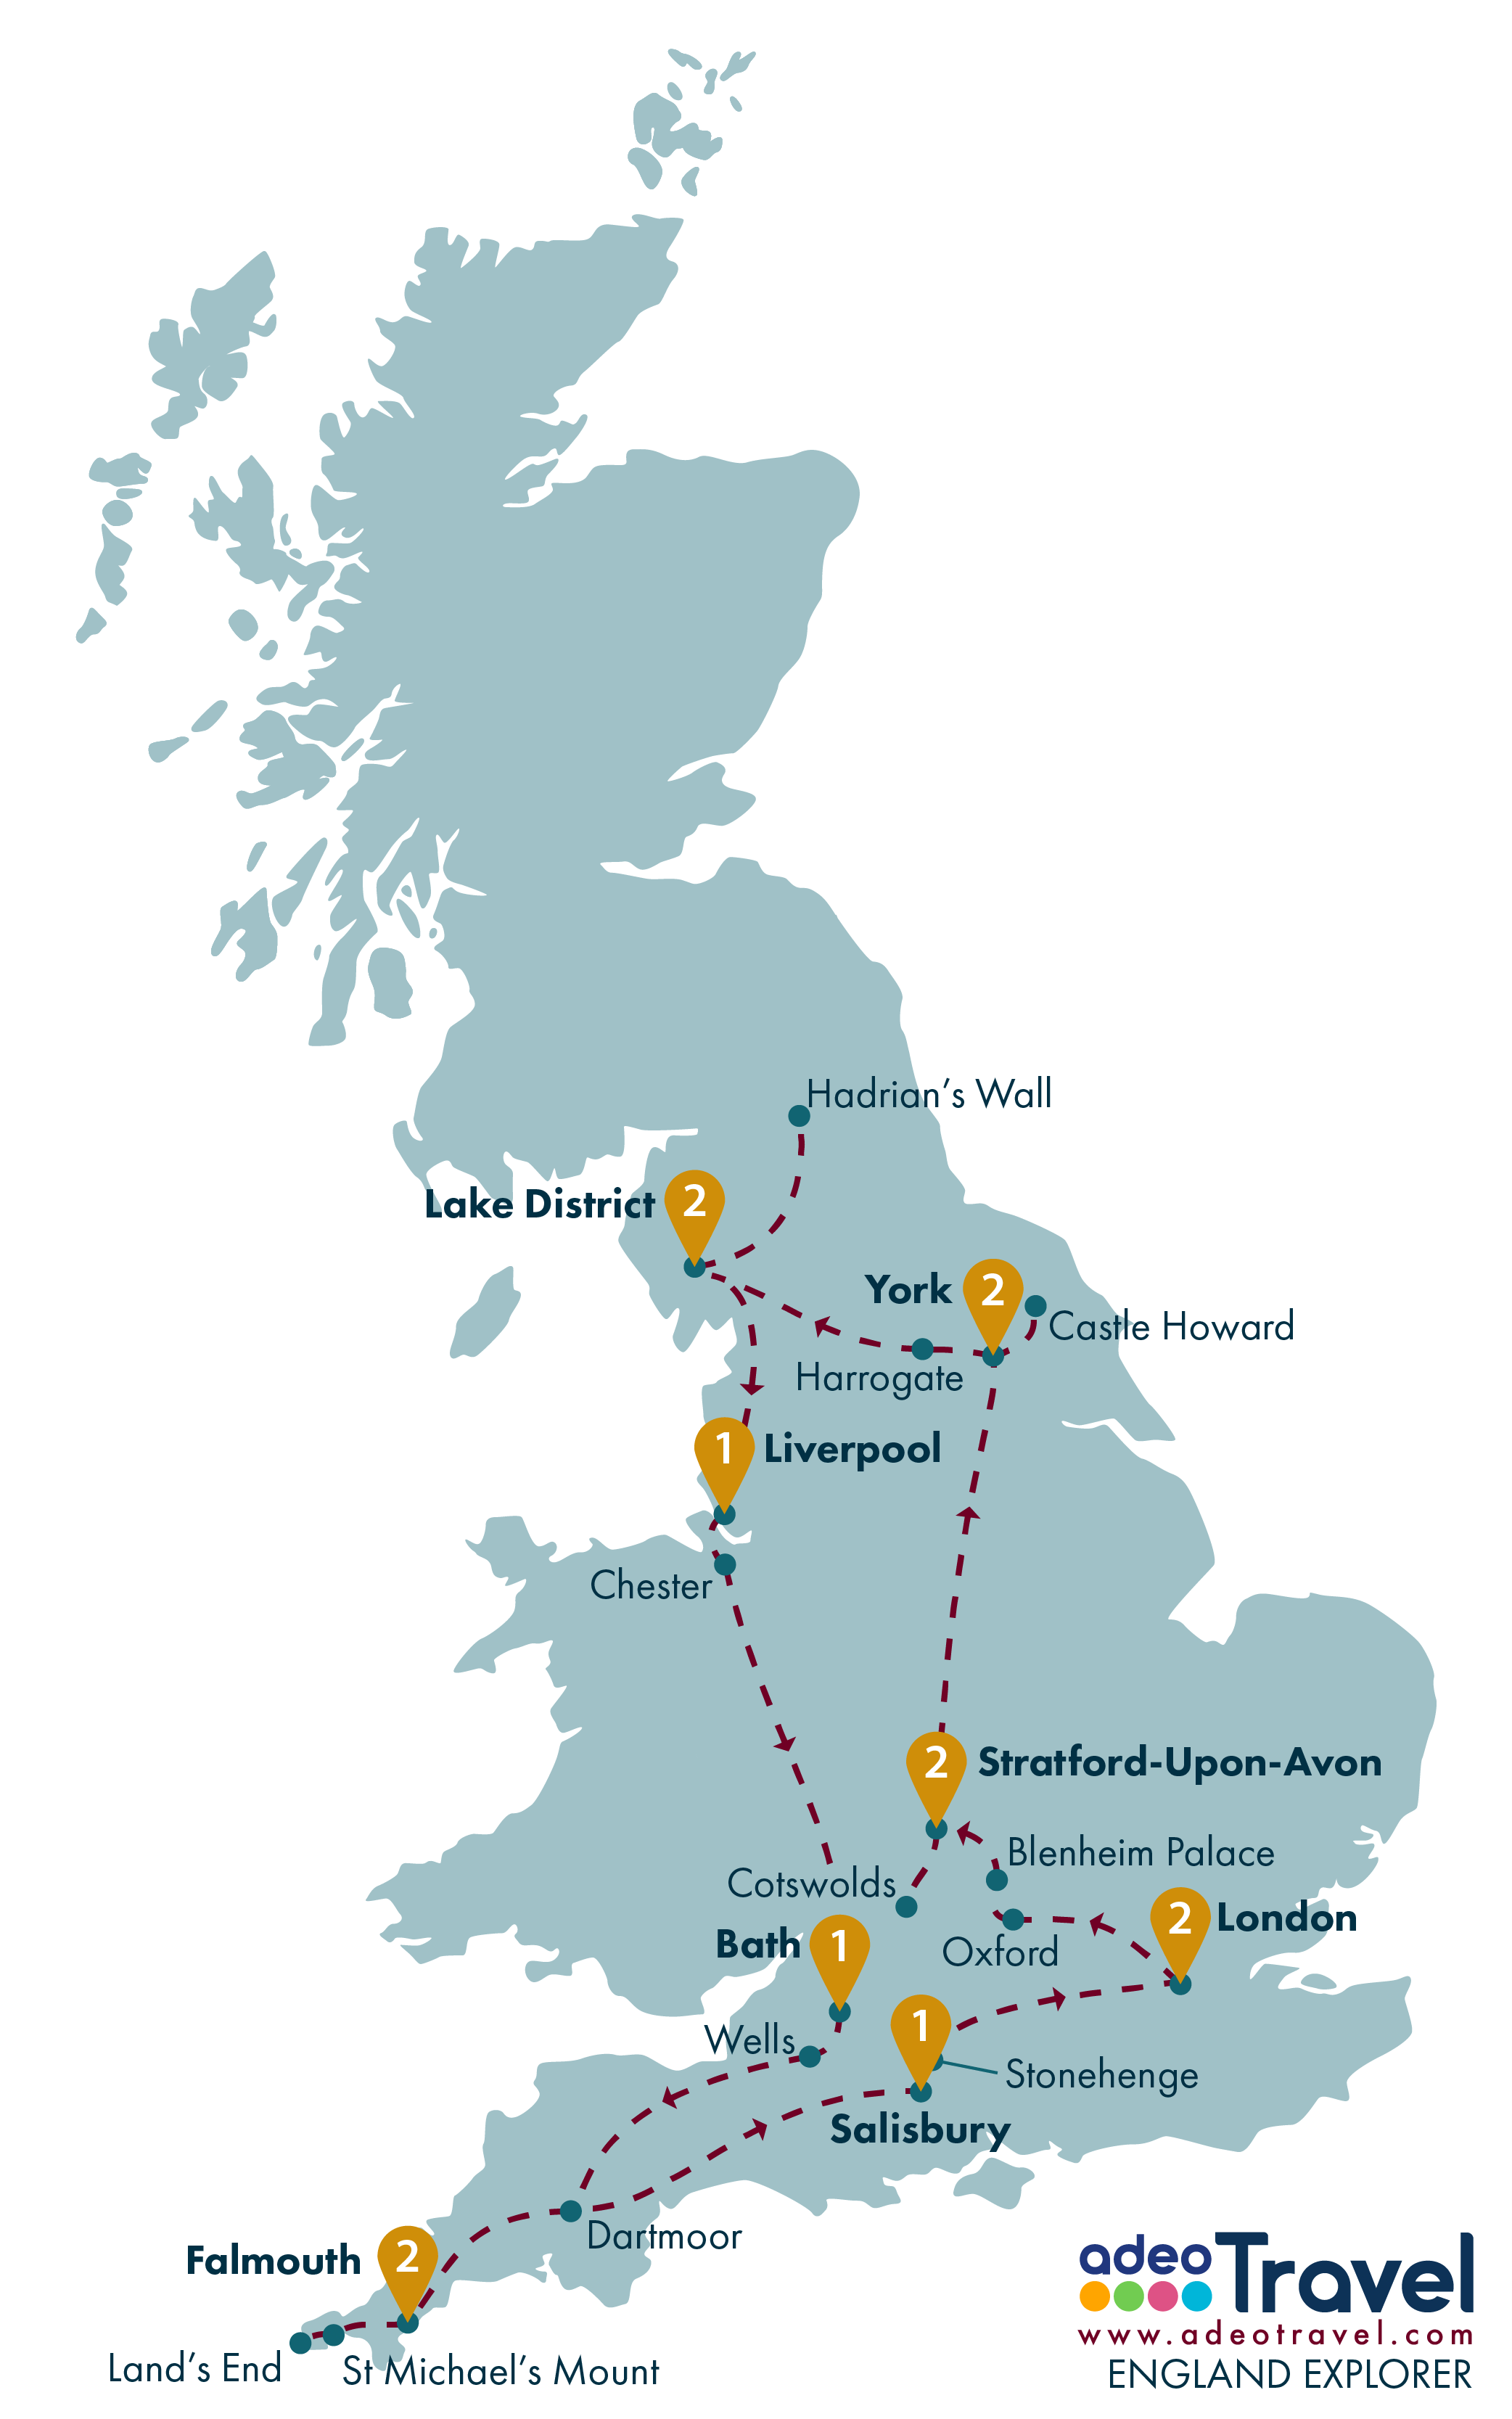 Tour Map - England Explorer